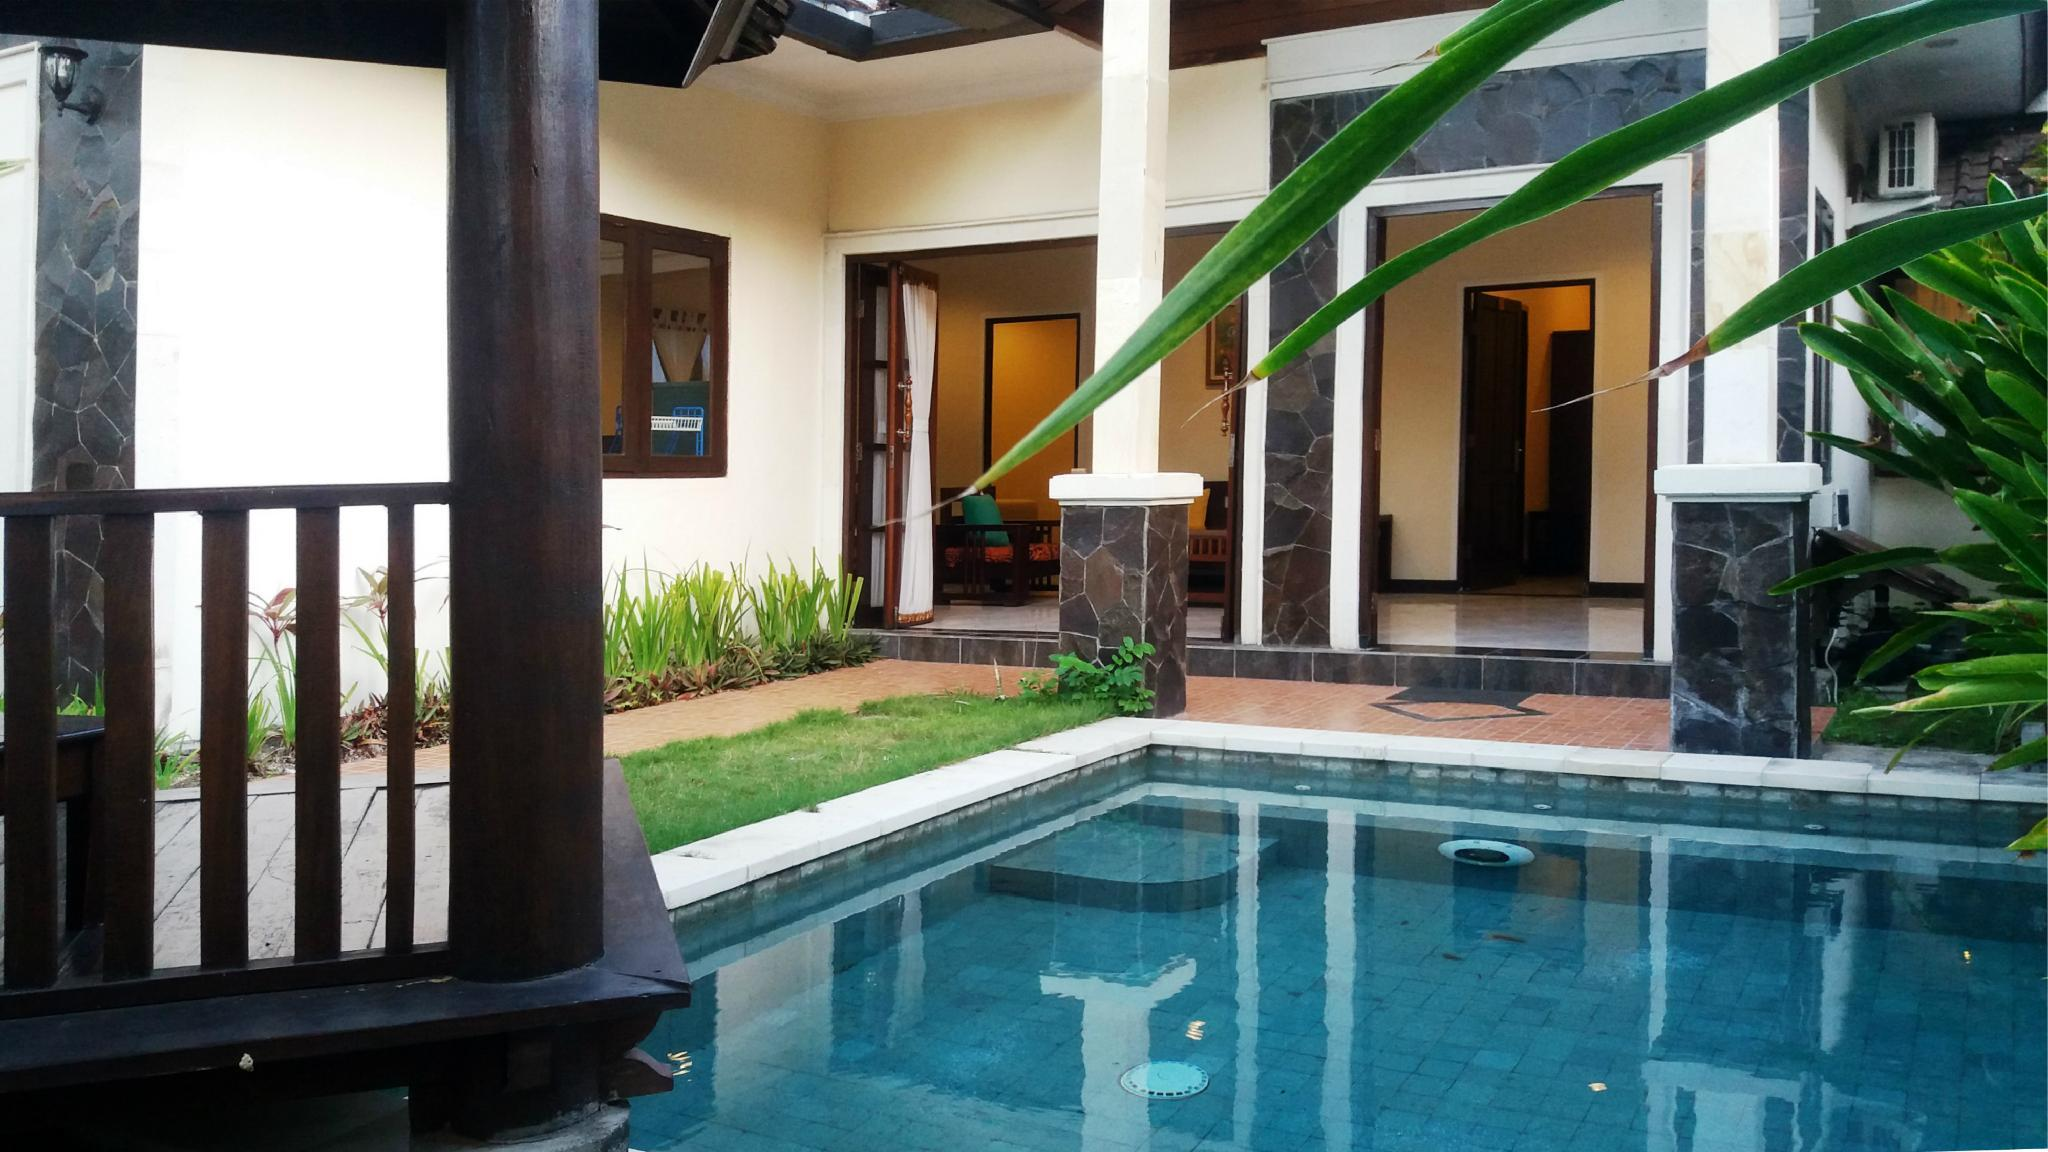 Homely 2 Bedroom Villa With Private Pool And Kitchen